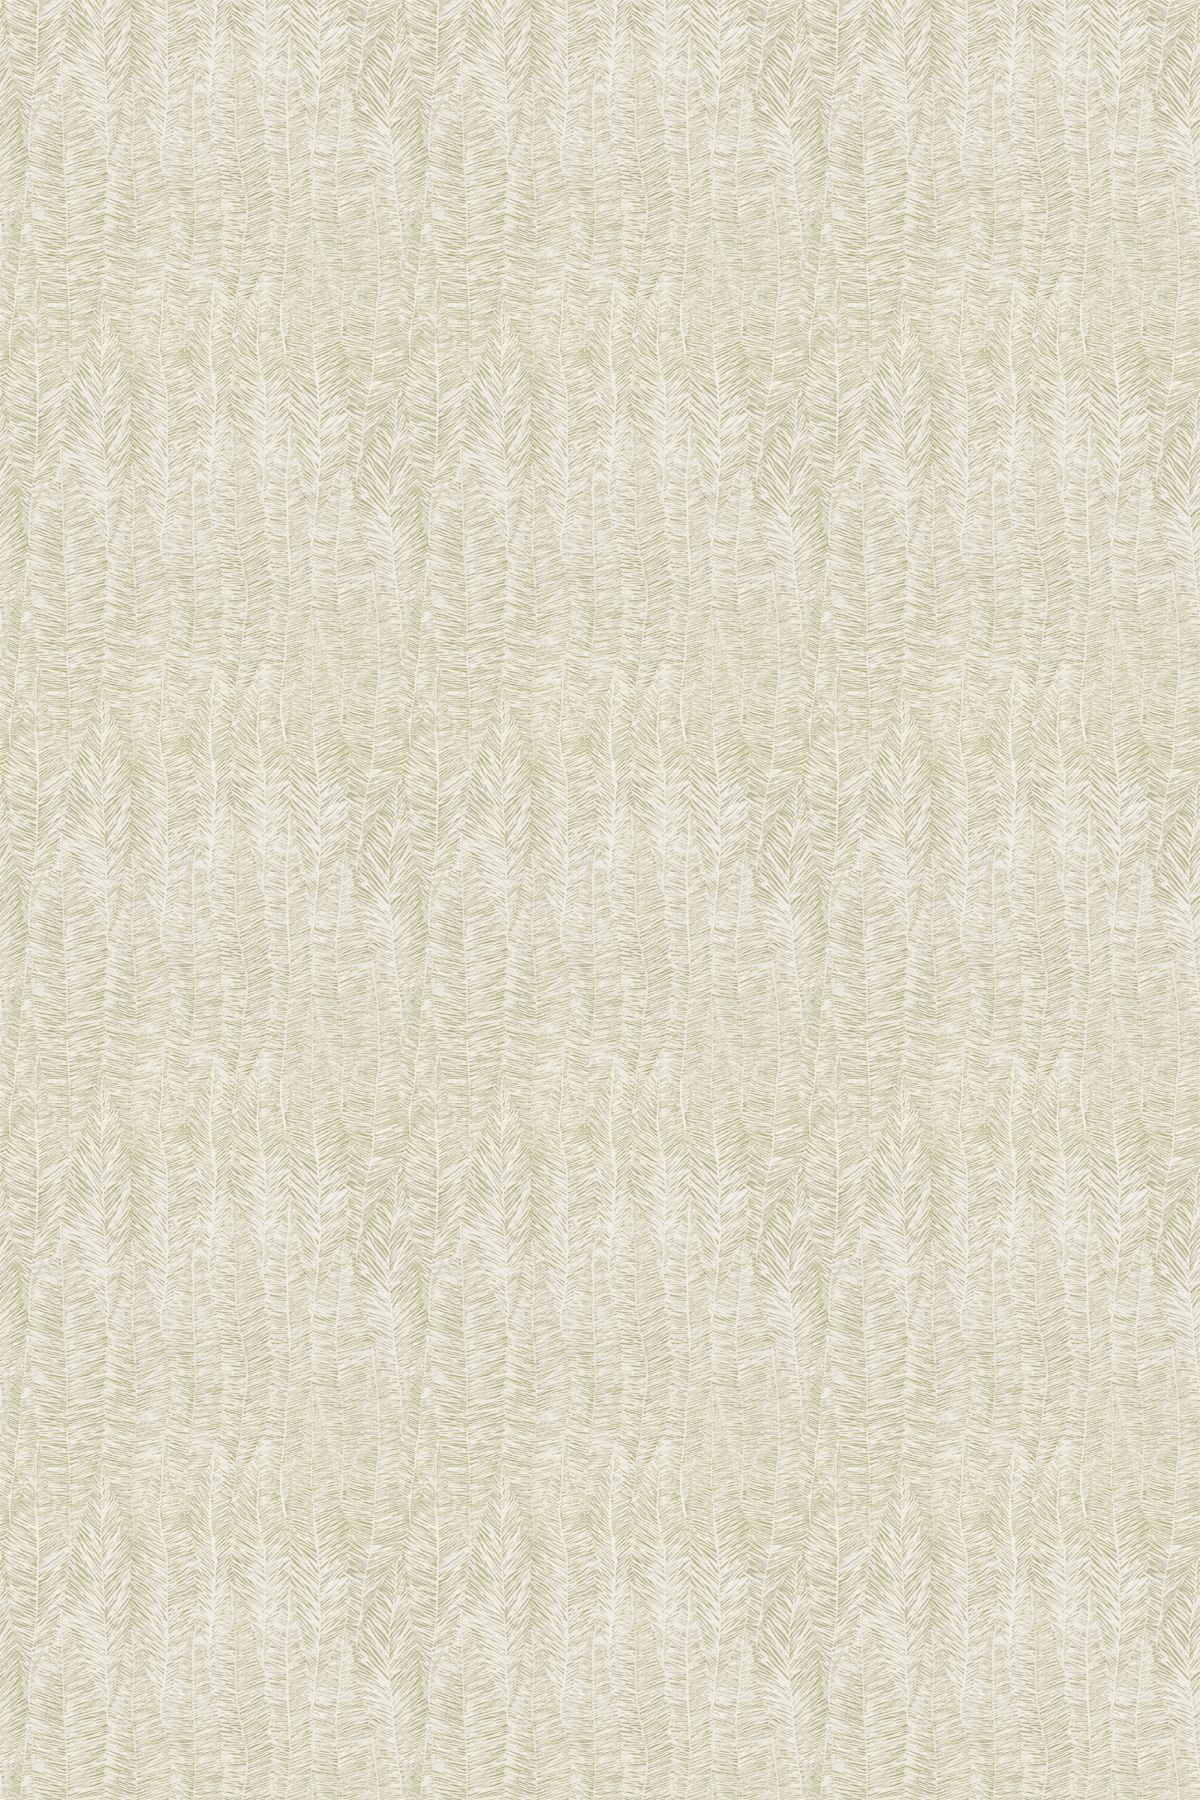 Image of Blendworth Fabric Quill, Quill/002